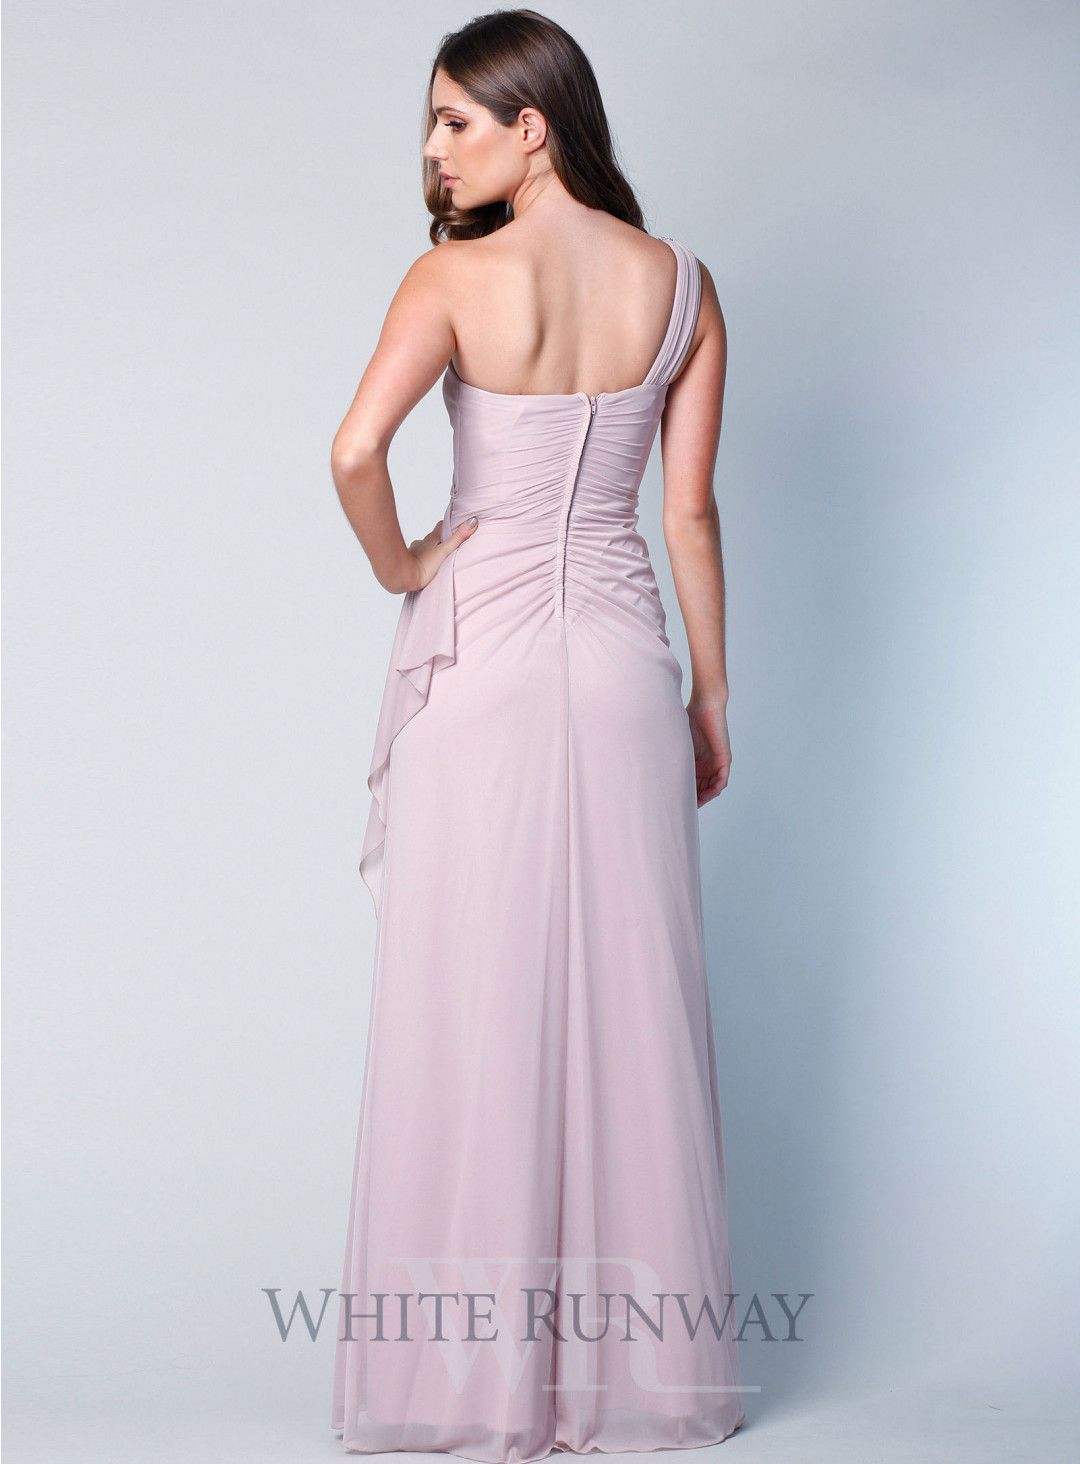 ddd6d6066cfb3 Quinn Dress. A beautiful full length dress by designer Zaliea. A one  shoulder style featuring an embellished strap. A flattering style with  gathers on the ...